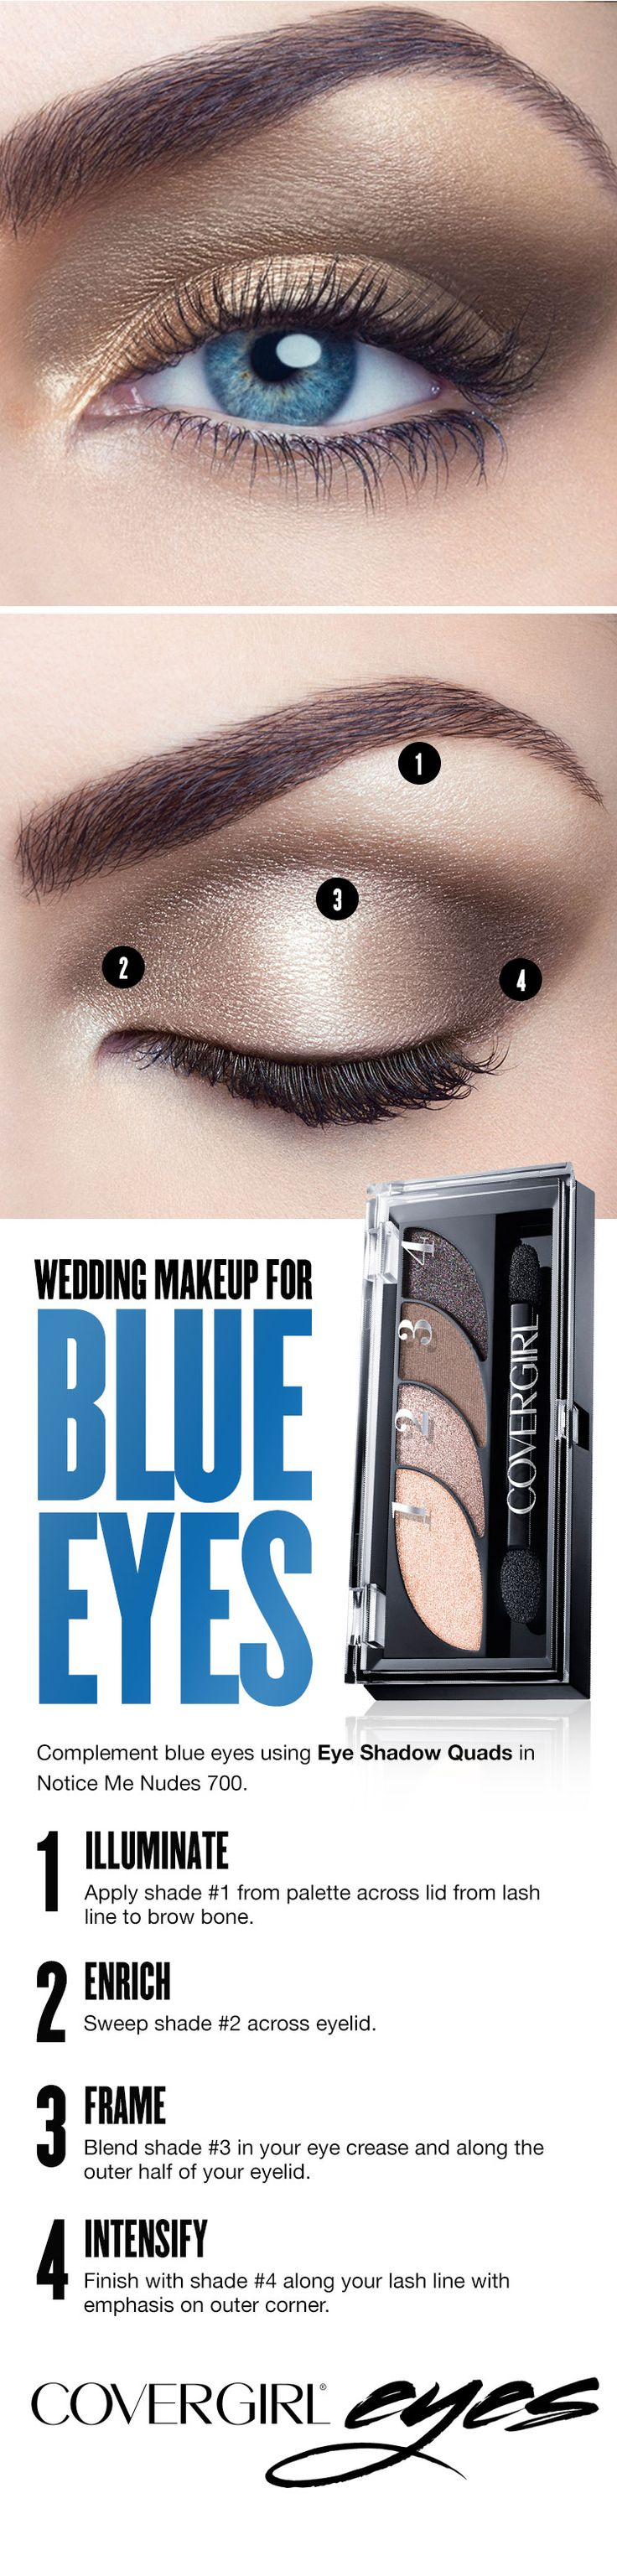 Light, neutral tones best complement blue eyes. COVERGIRL's Eye Shadow Quad in Notice Me Nudes 700